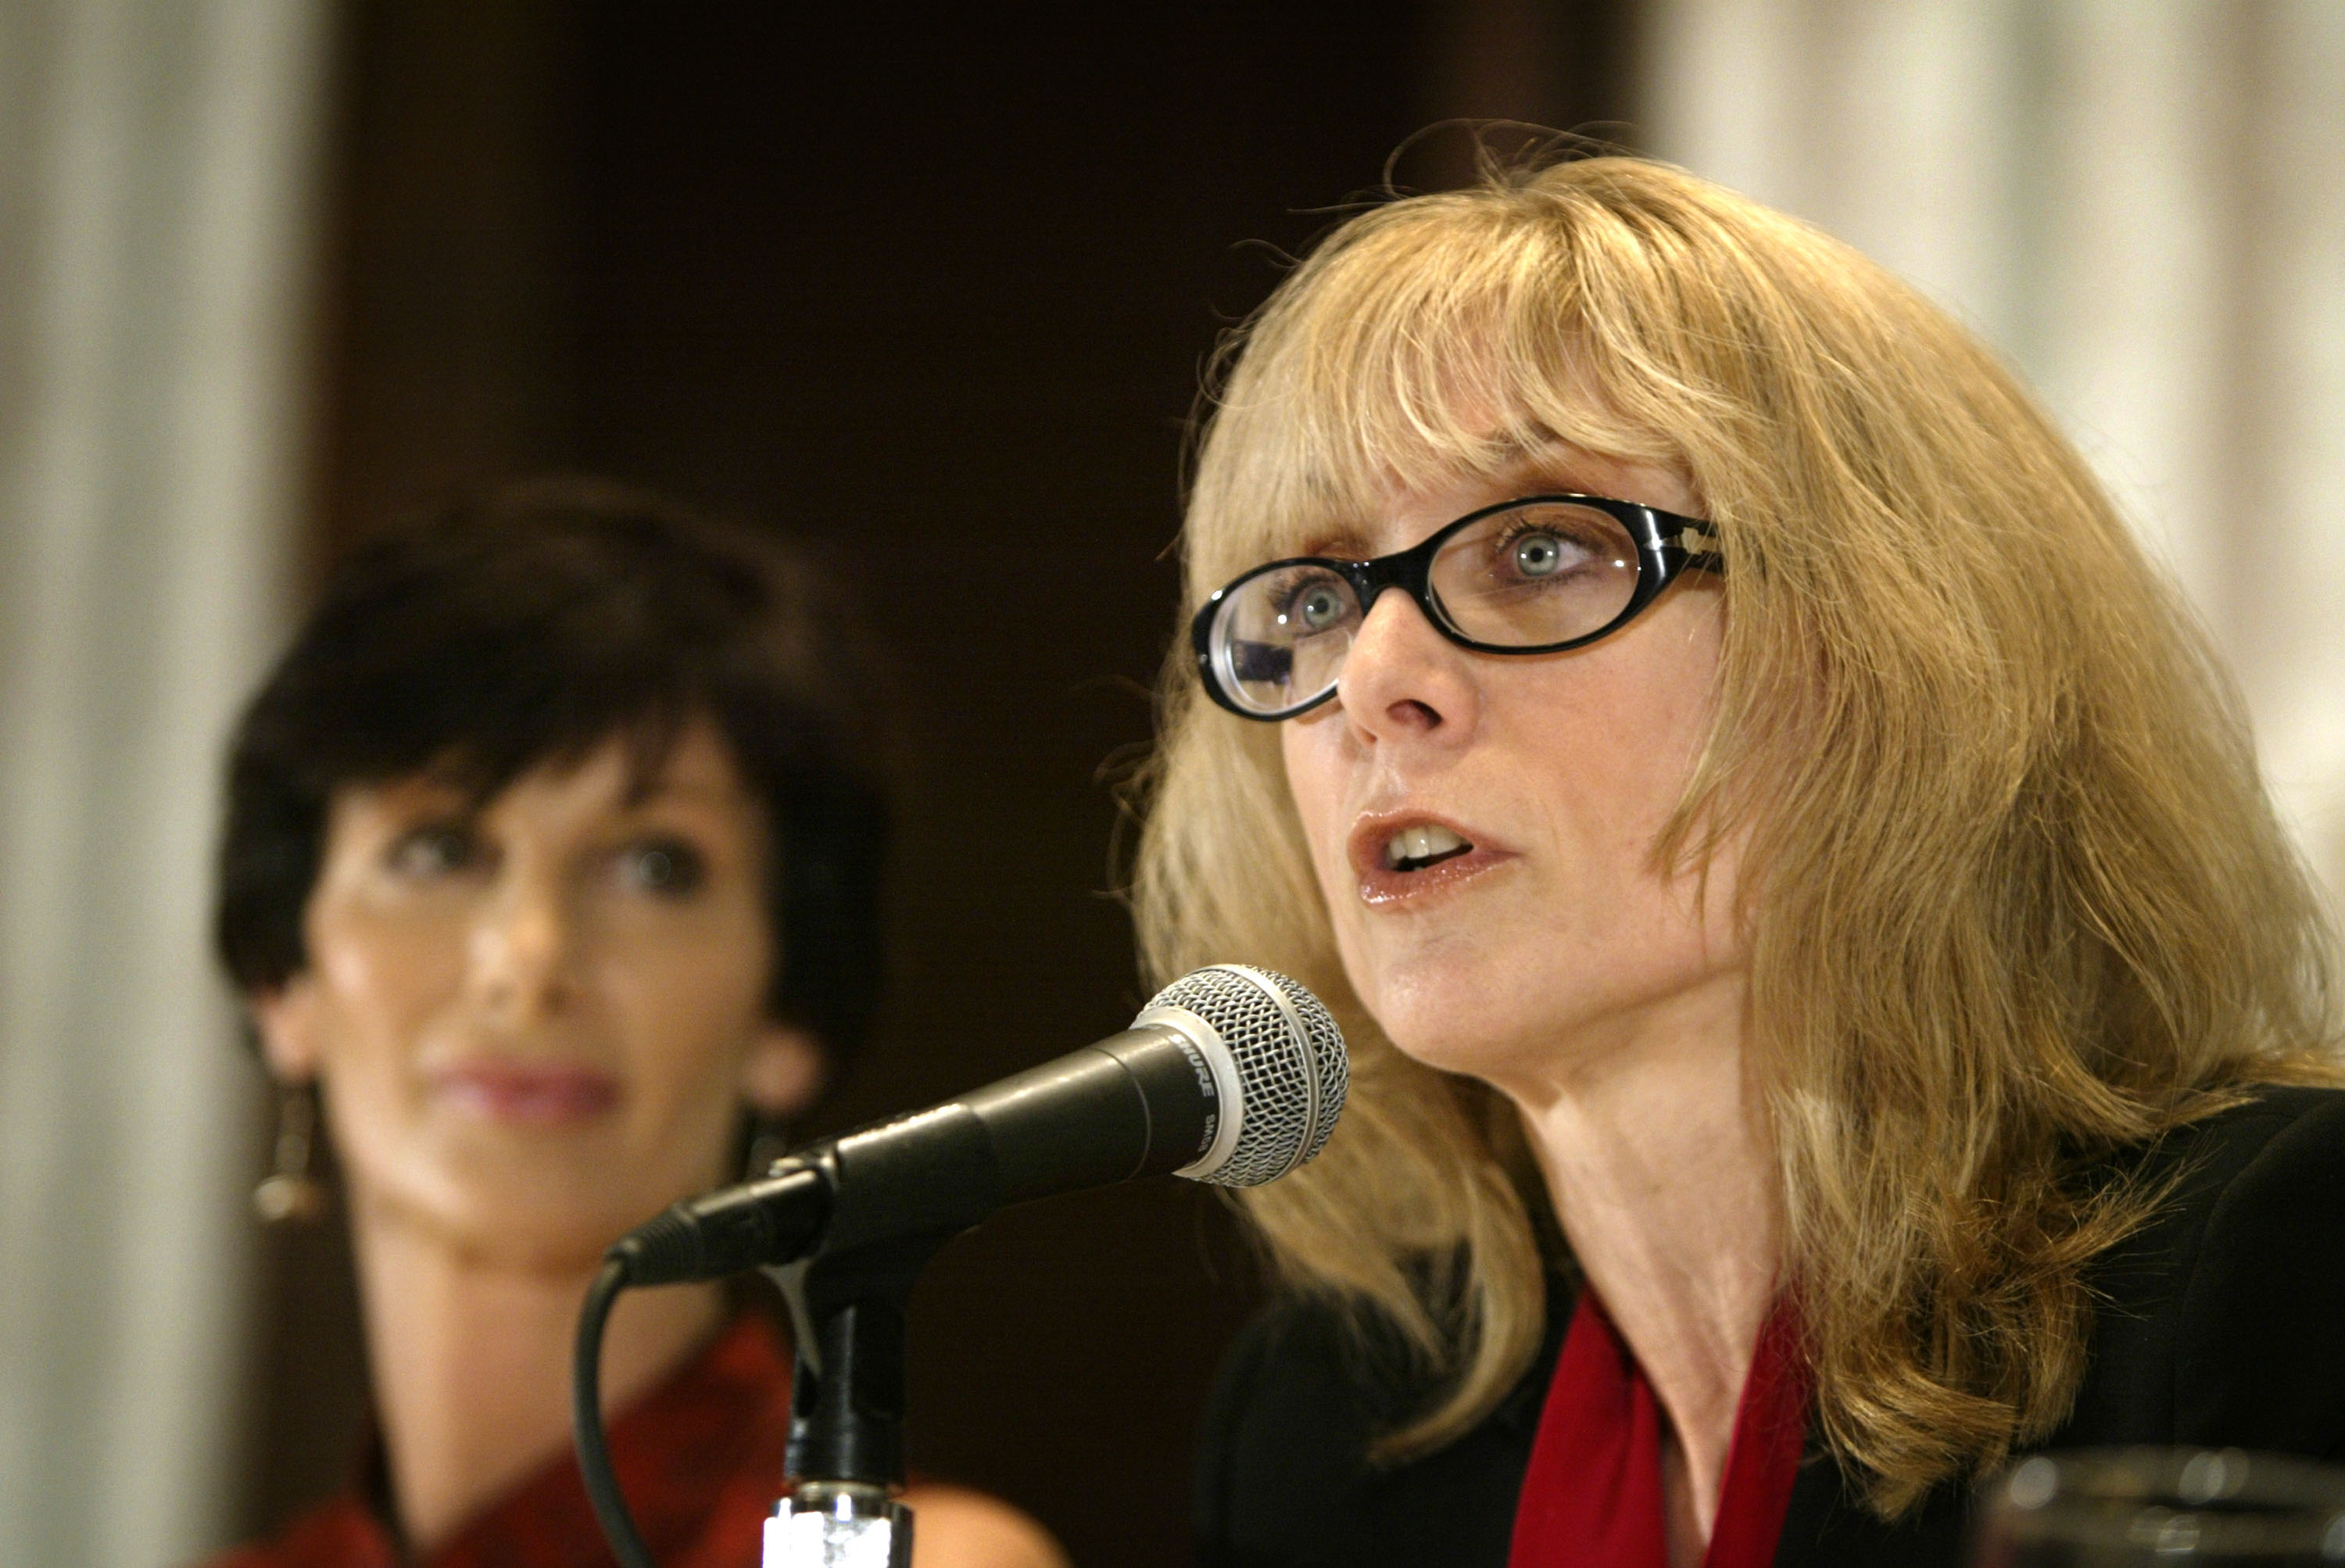 LOS ANGELES - APRIL 22: Porn actress Nina Hartley (R) speaks as former porn actress and co-founder of AIM (Adult Industry Medical) HealthCare Foundation, Dr. Sharon Mitchell (L), looks on during an AIM press conference on the outbreak of the HIV in pornographic entertainment industry on April 22, 2004 in Los Angeles, California. Getty Images/ David McNew